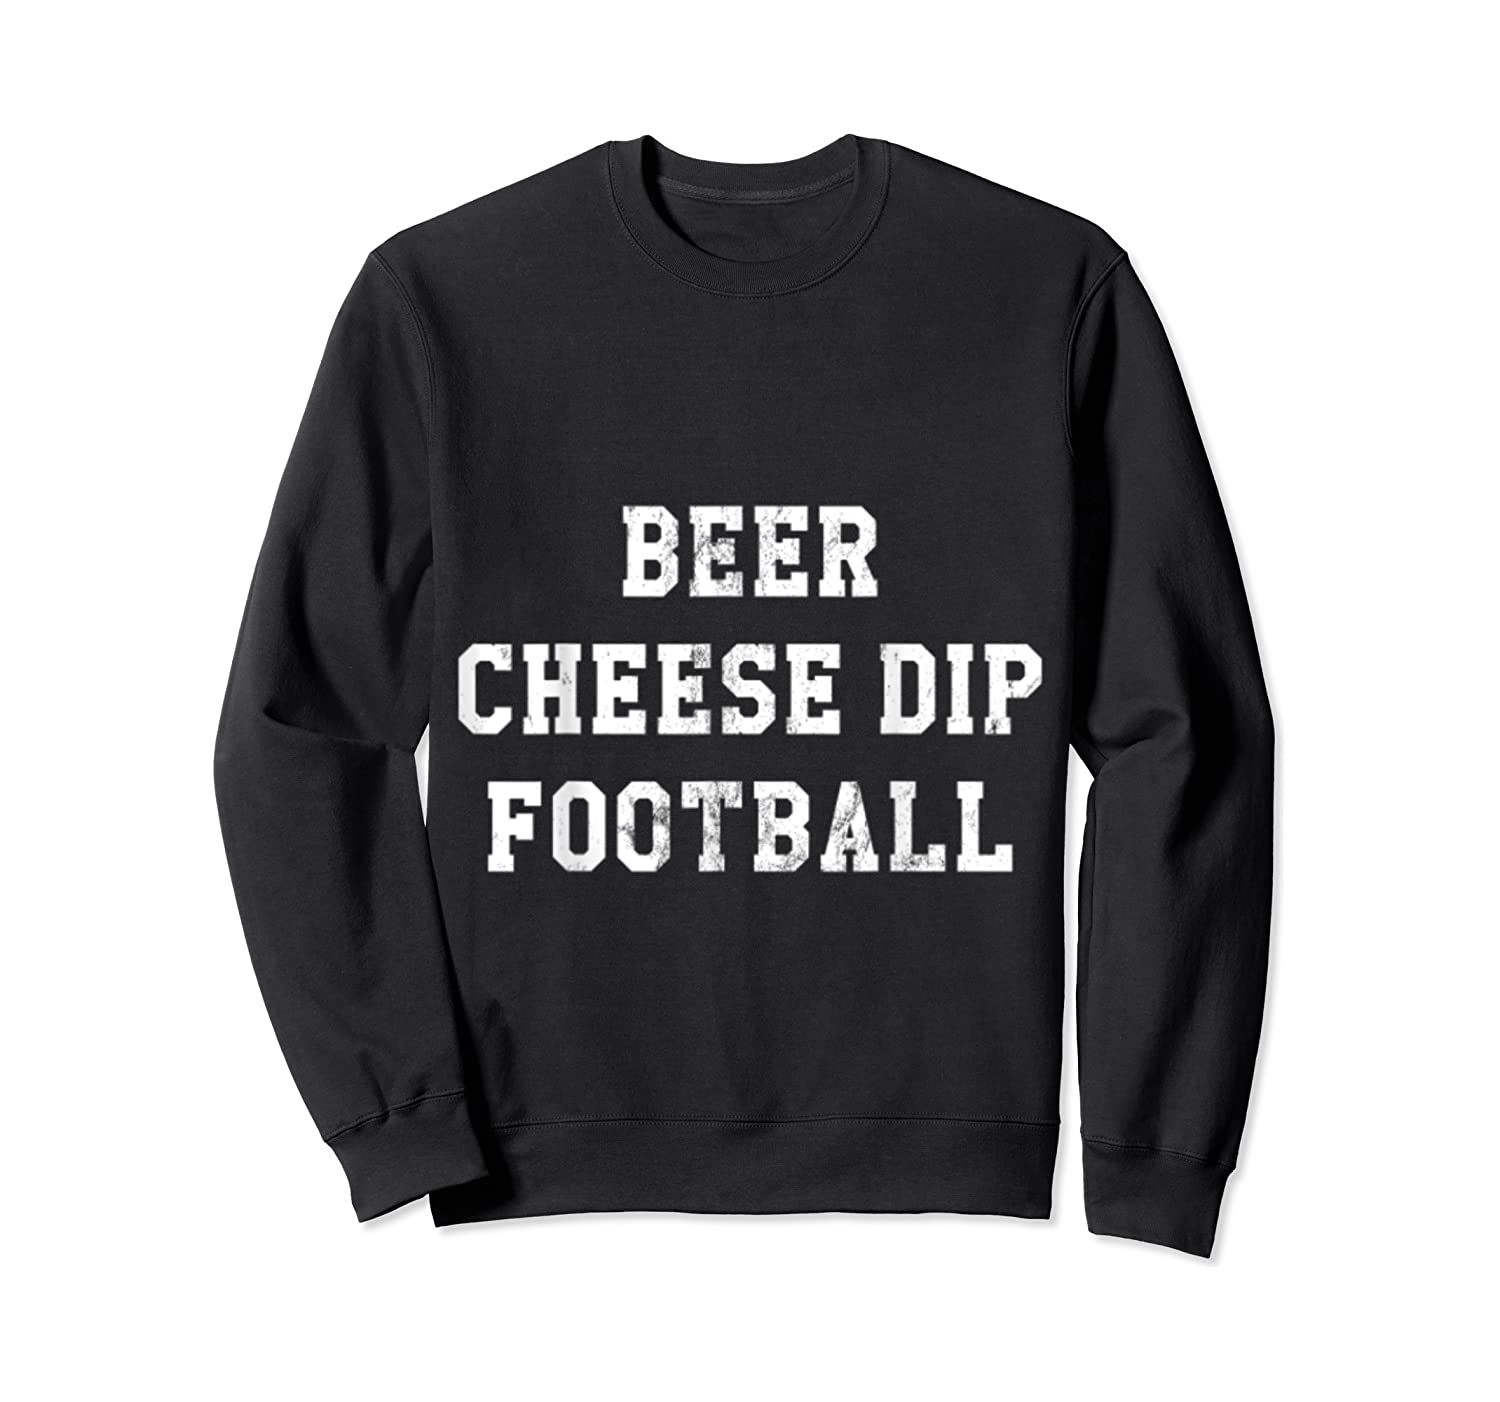 Beer Cheese Dip Football Design For Game Day T-shirt Crewneck Sweater